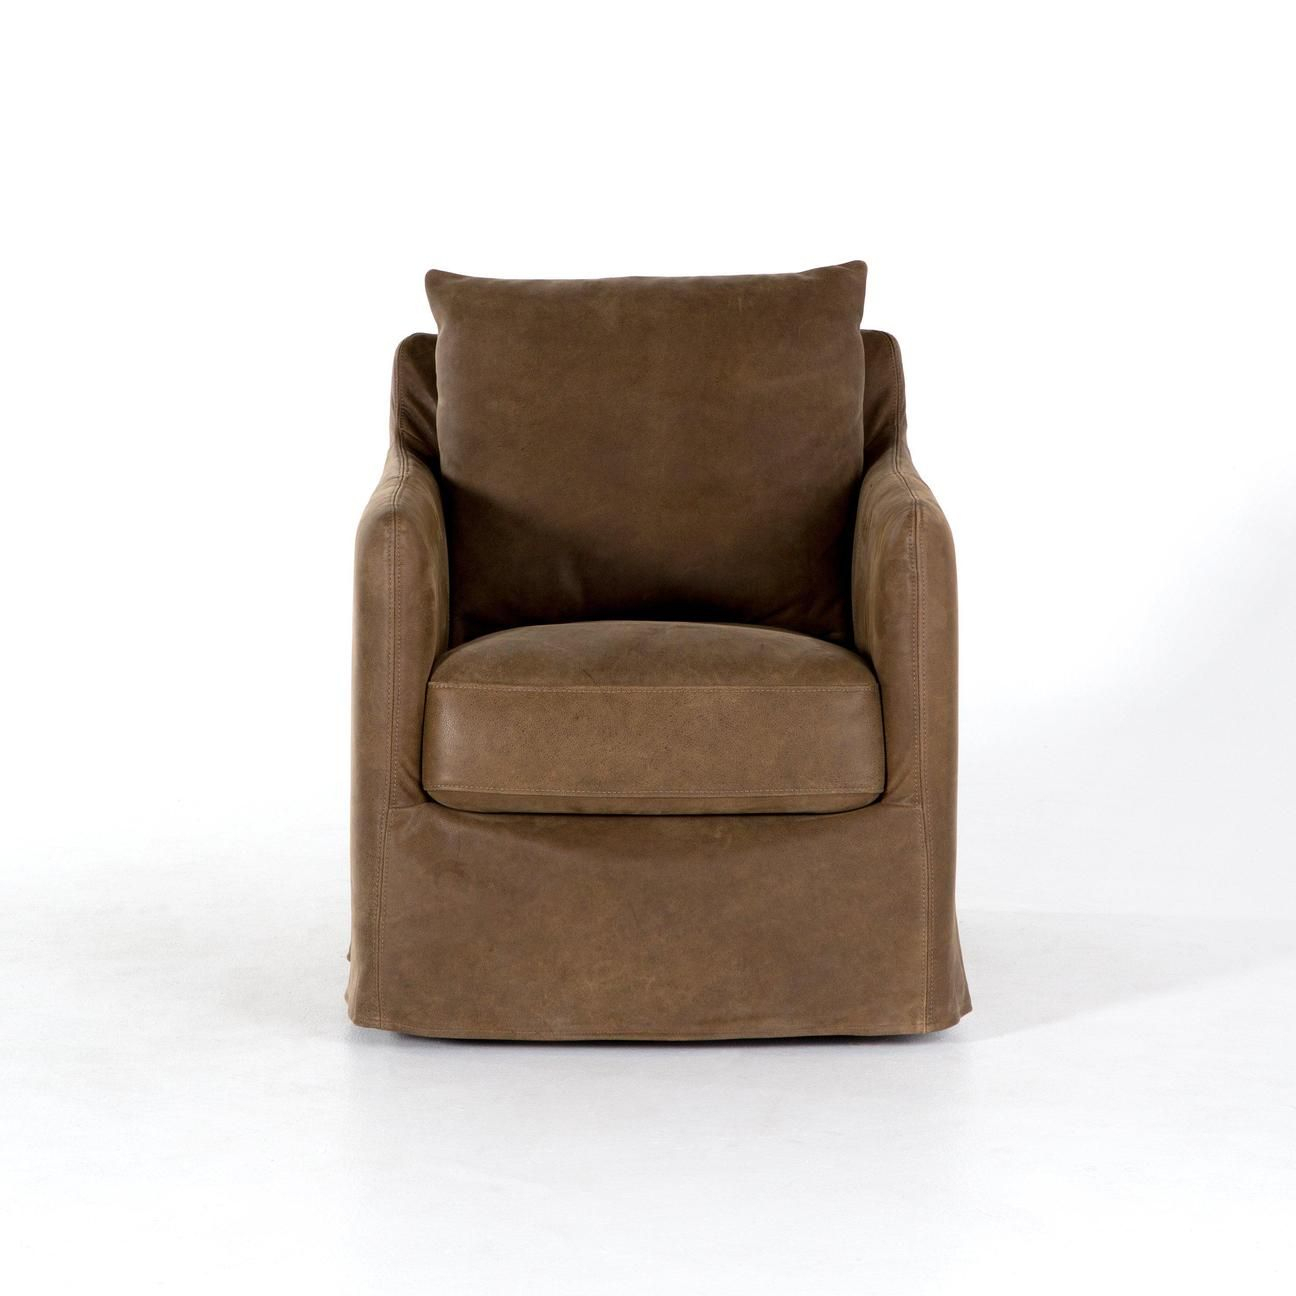 Kensington Collection Banks Top Grain Leather Swivel Chair: Umber Inside Umber Grey Swivel Accent Chairs (View 2 of 20)